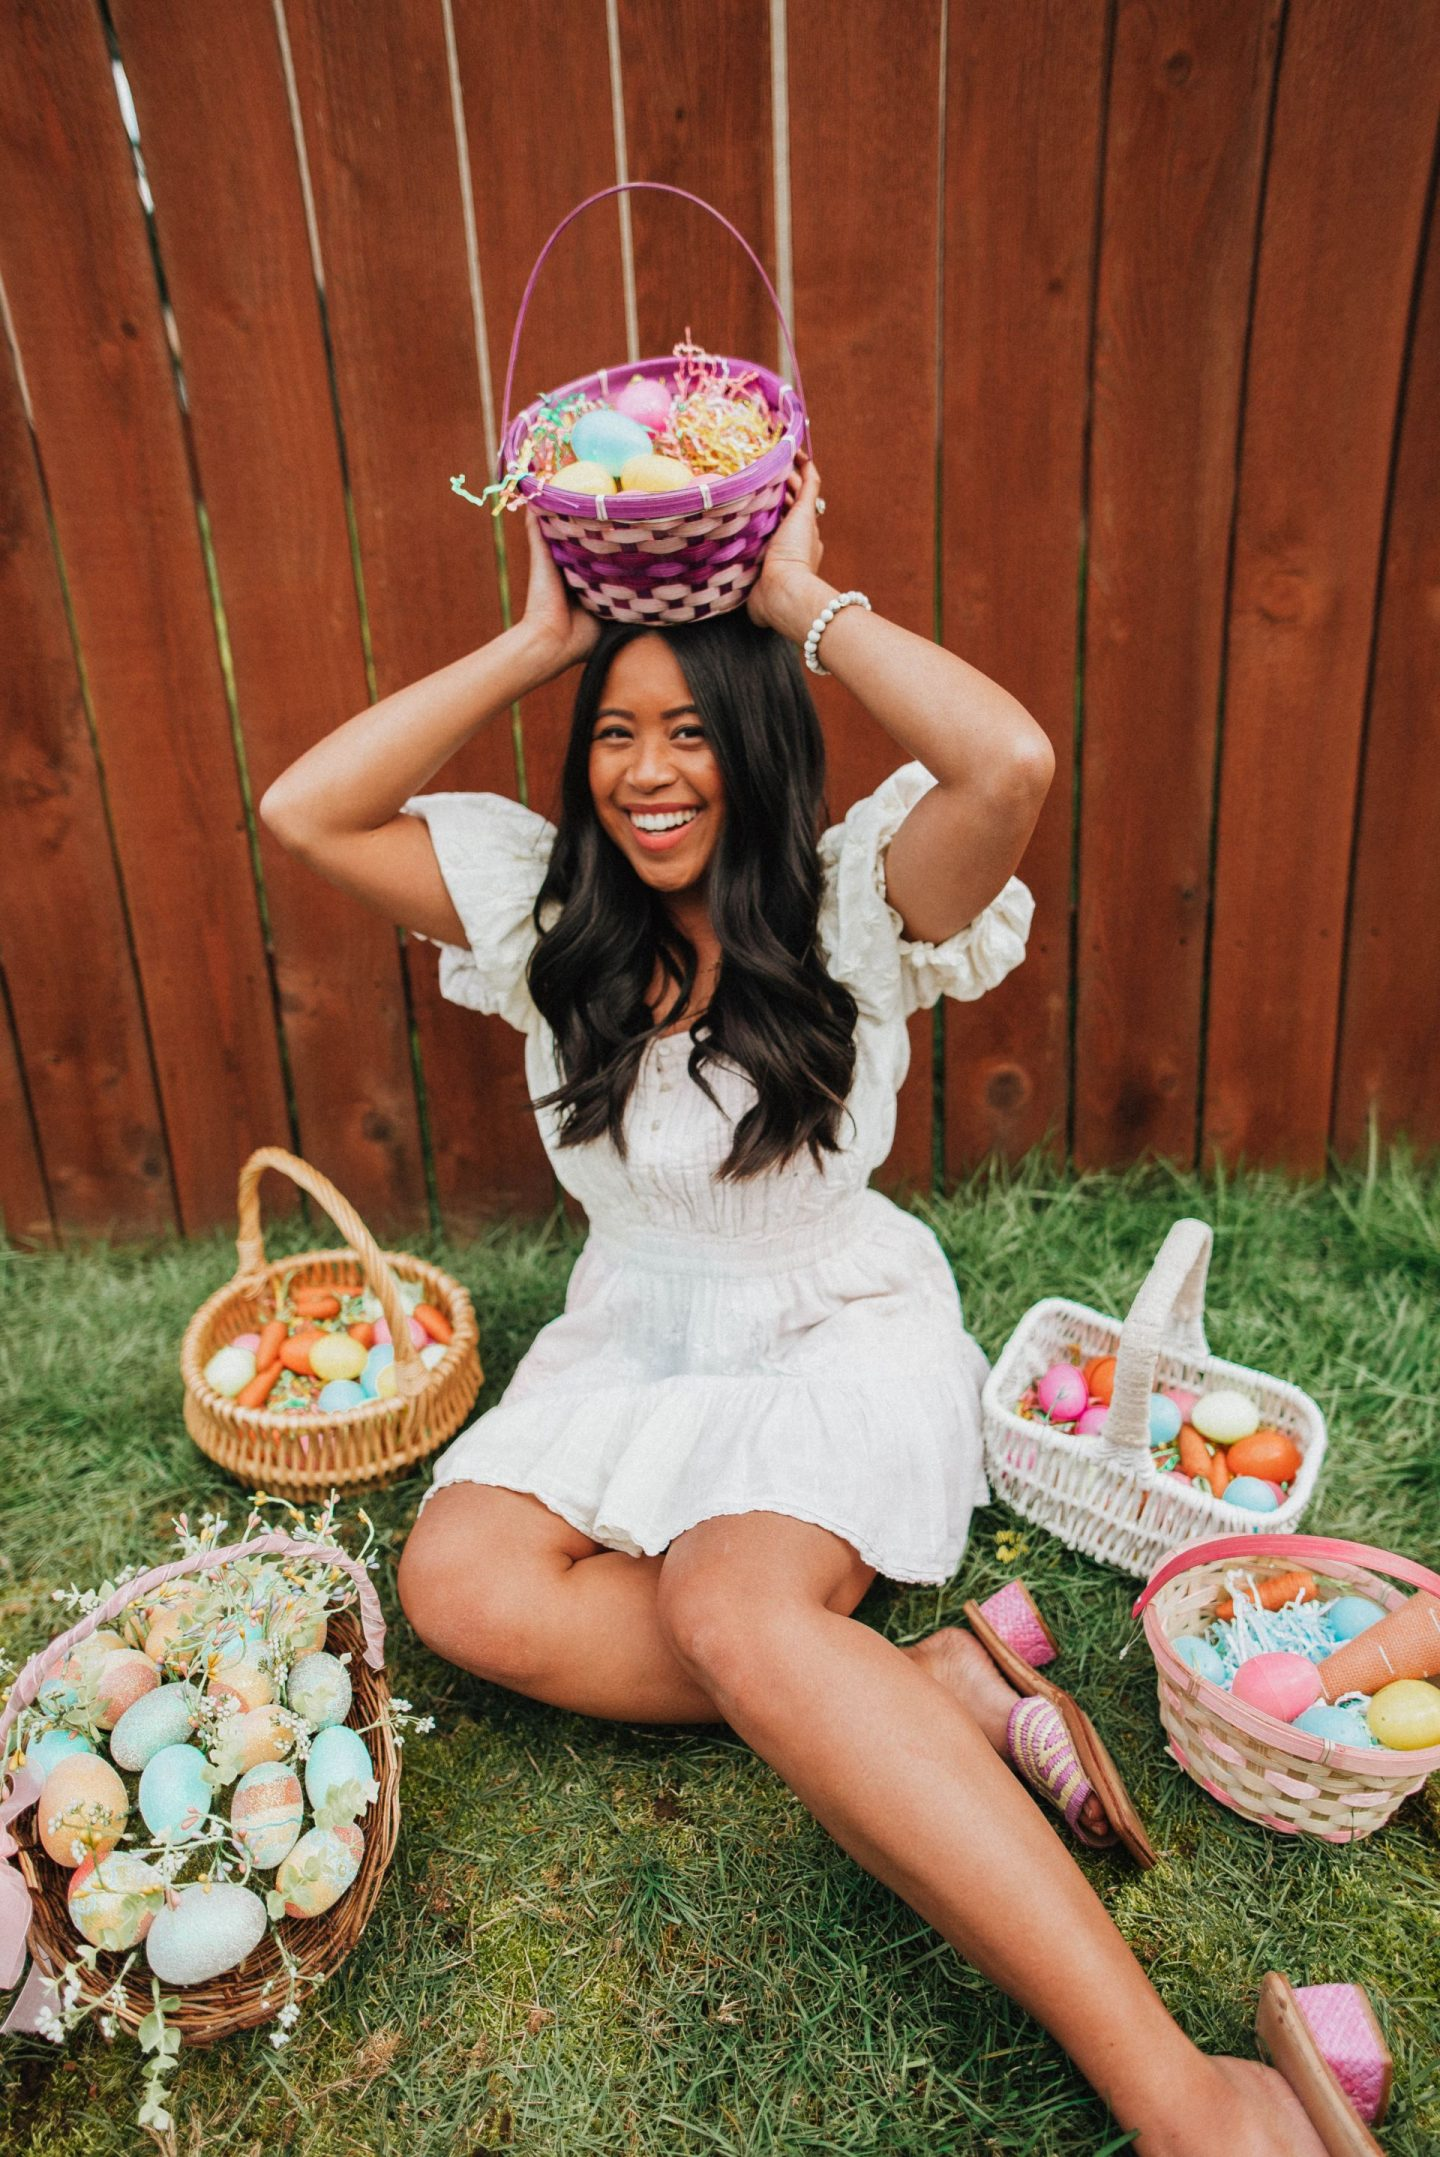 Sitting around Easter baskets - Easter baskets - Easter egg hunt - Easter photo shoot ideas - Easter dresses - Easter outfits - image from www.emmasedition - copyright @emmasedition